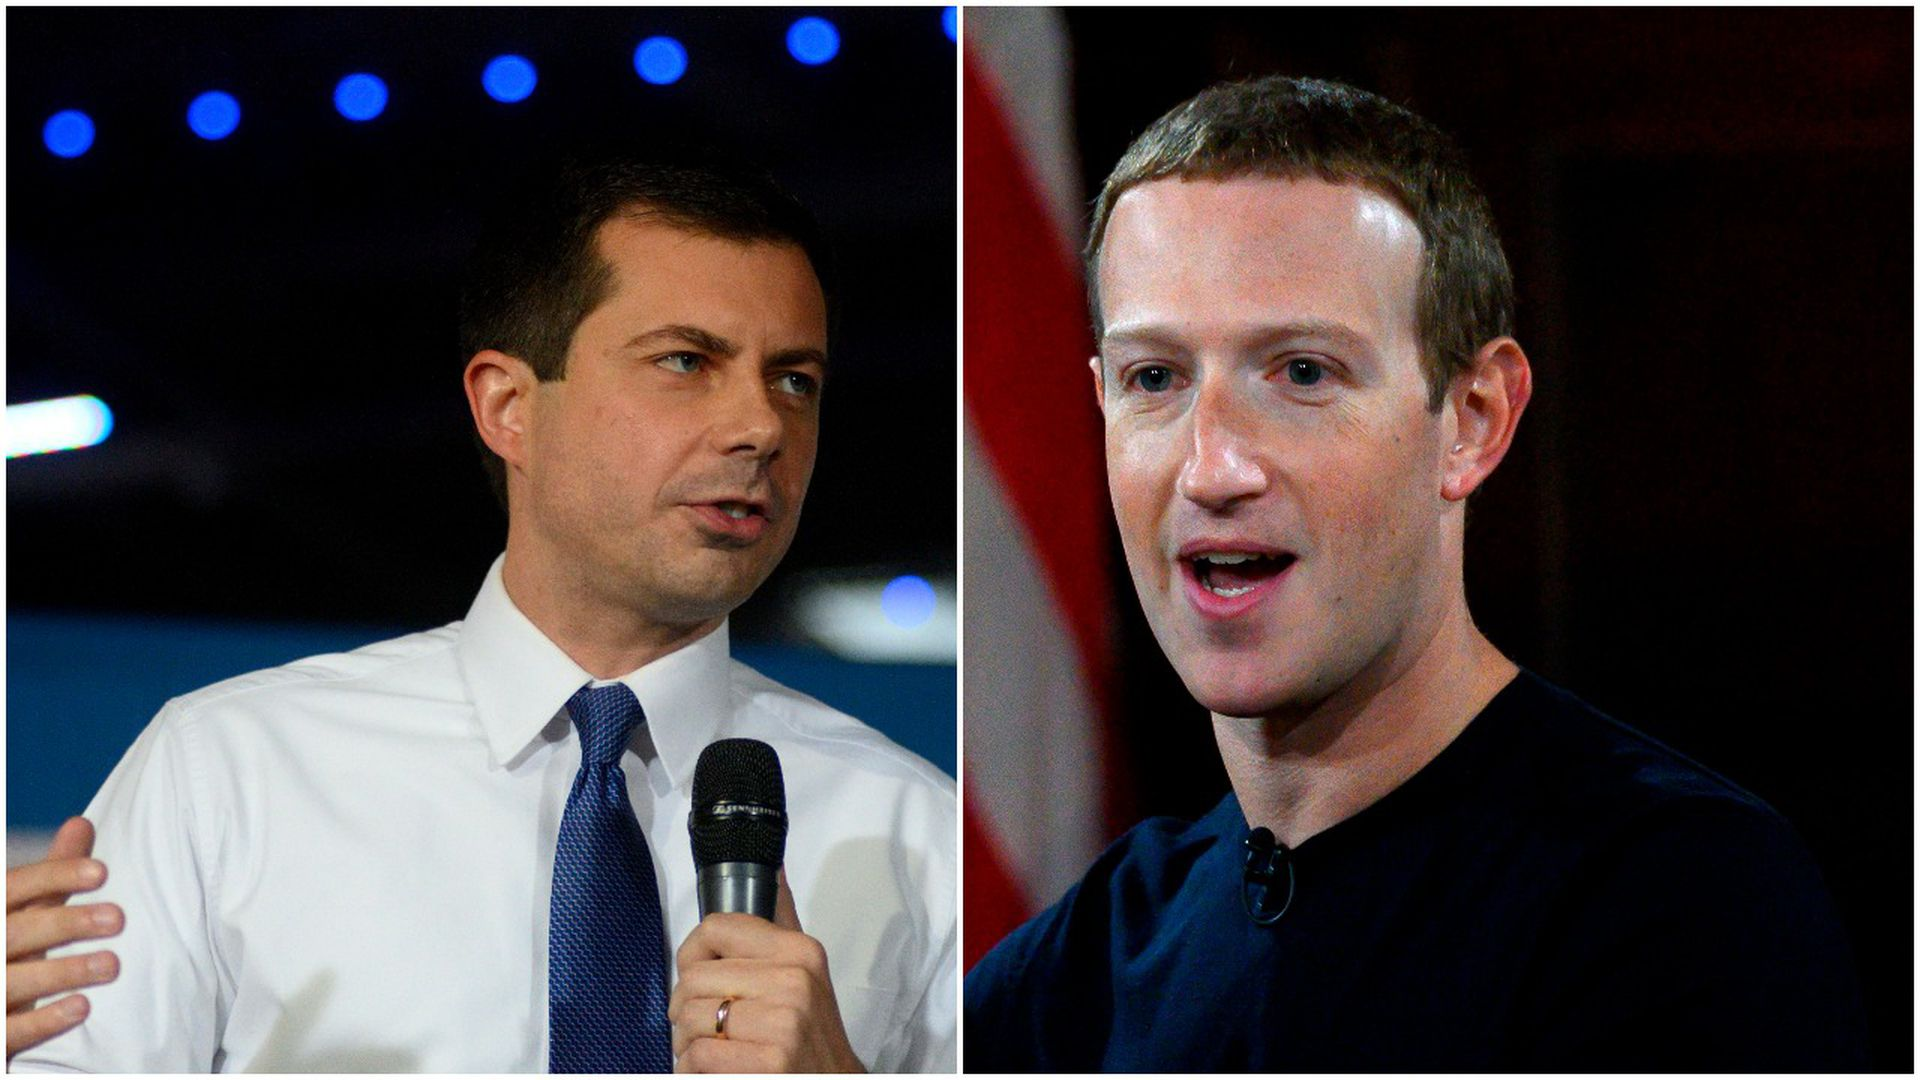 Facebook's Mark Zuckerberg sent staff recommendations to Pete Buttigieg's campaign